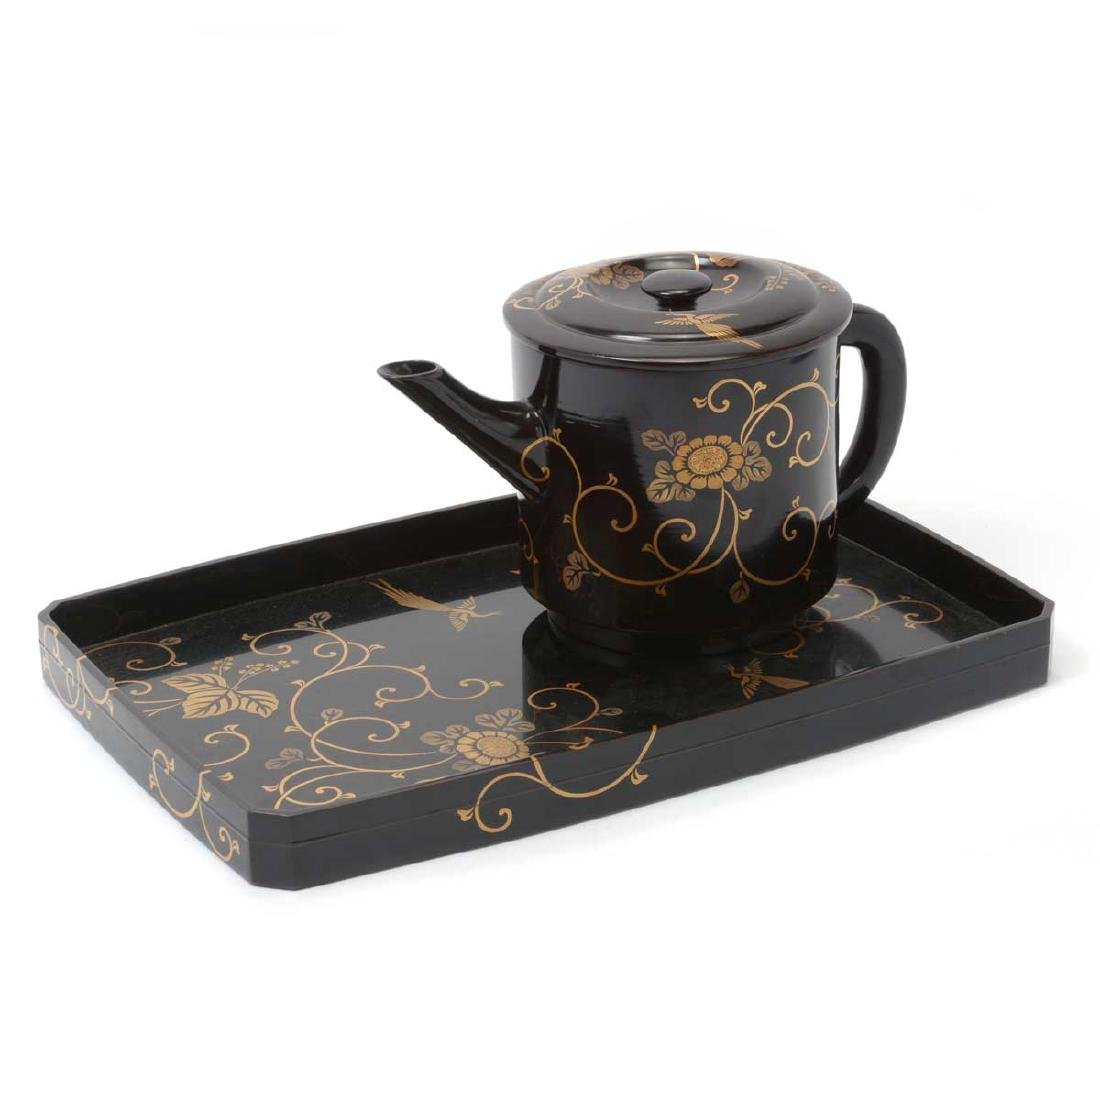 Japanese Lacquered Teapot and Serving Tray, Meiji